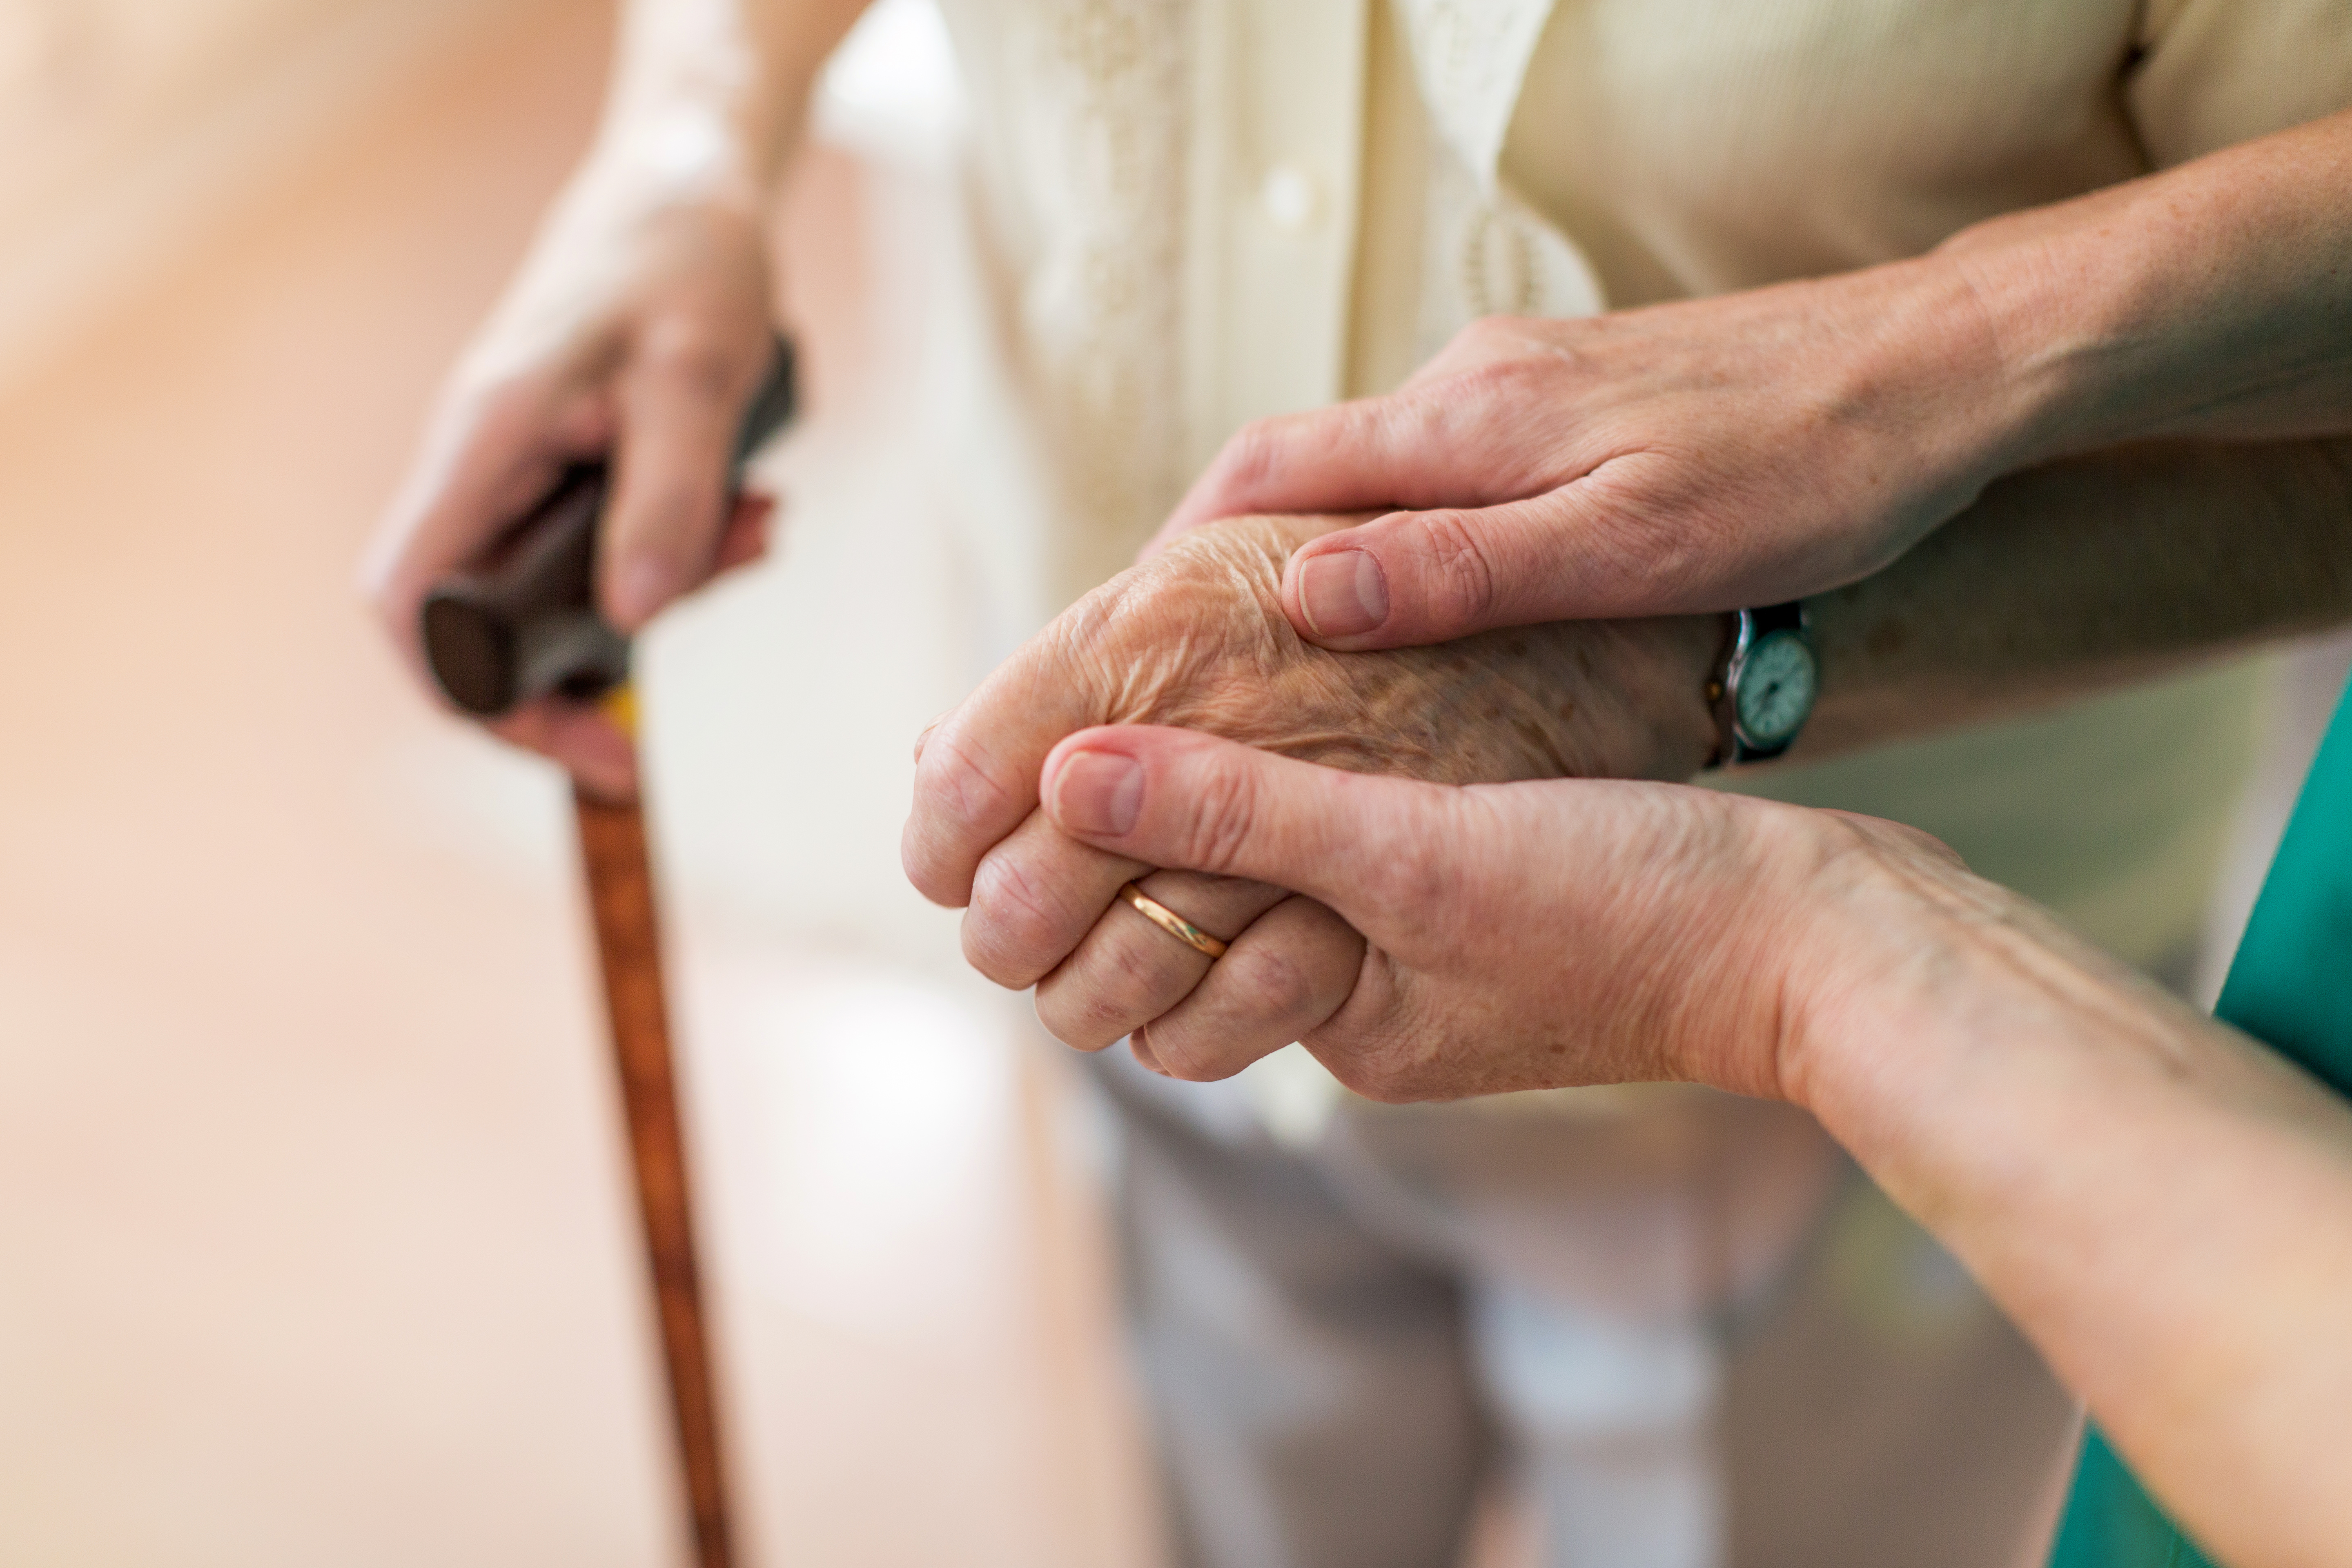 Daughter helping her elderly dementia-diagnosed mother by holding her hands